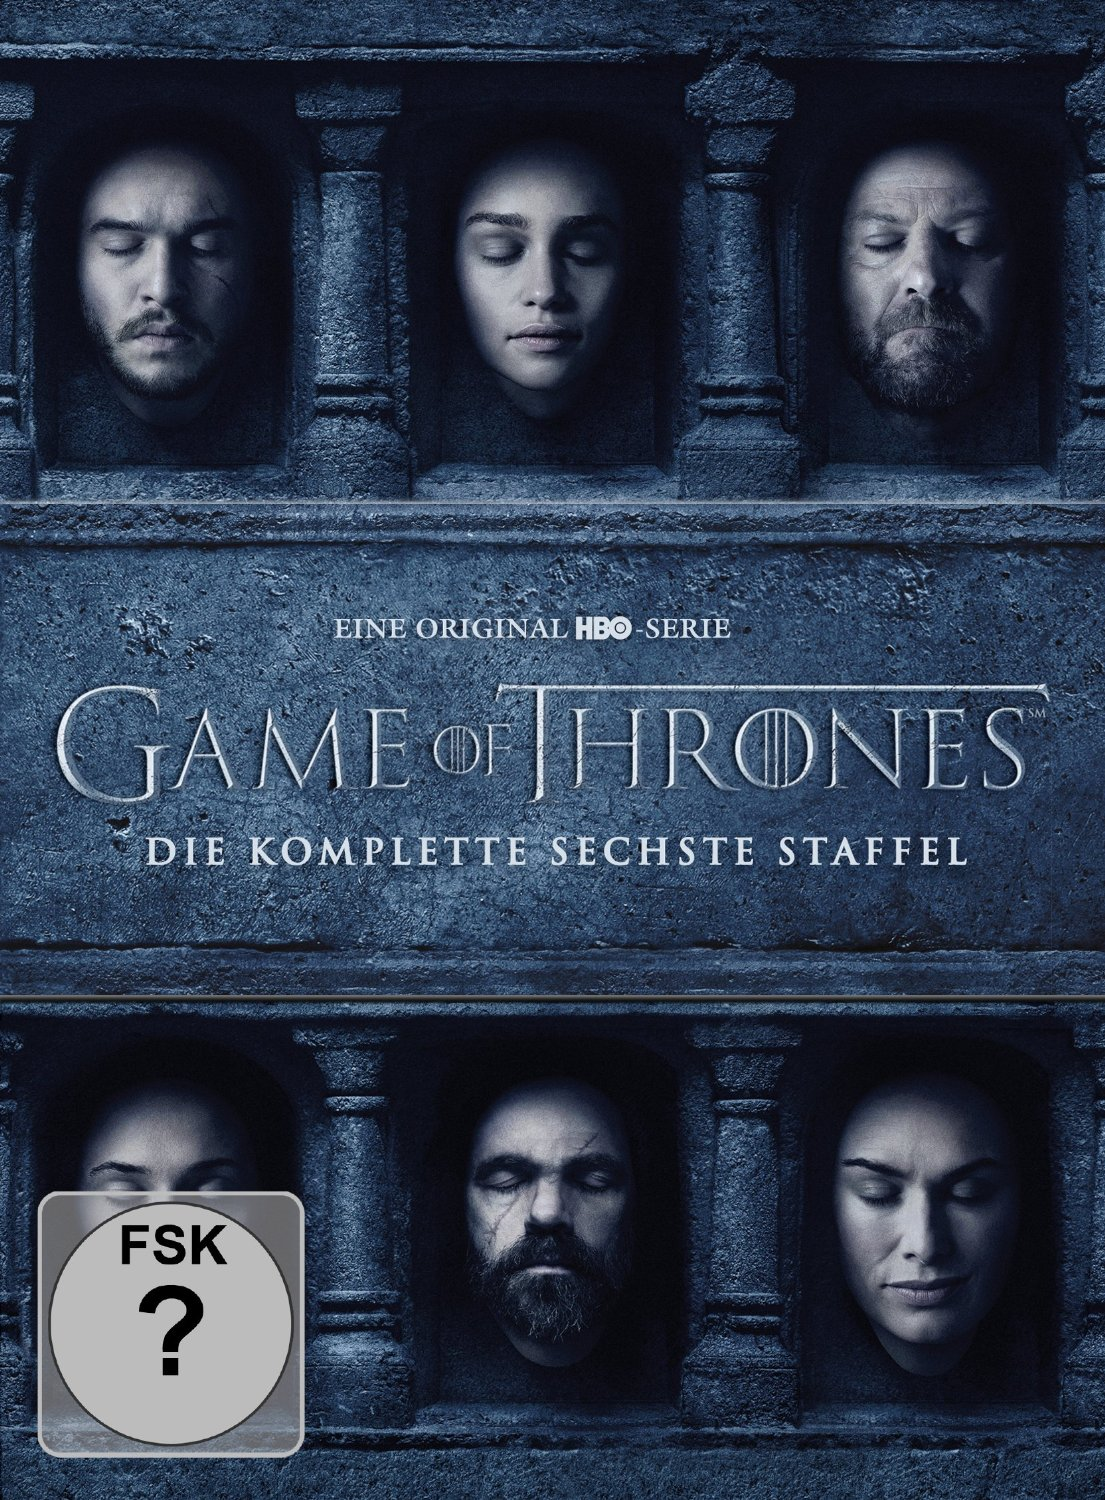 Game of Thrones Staffel 6 Release